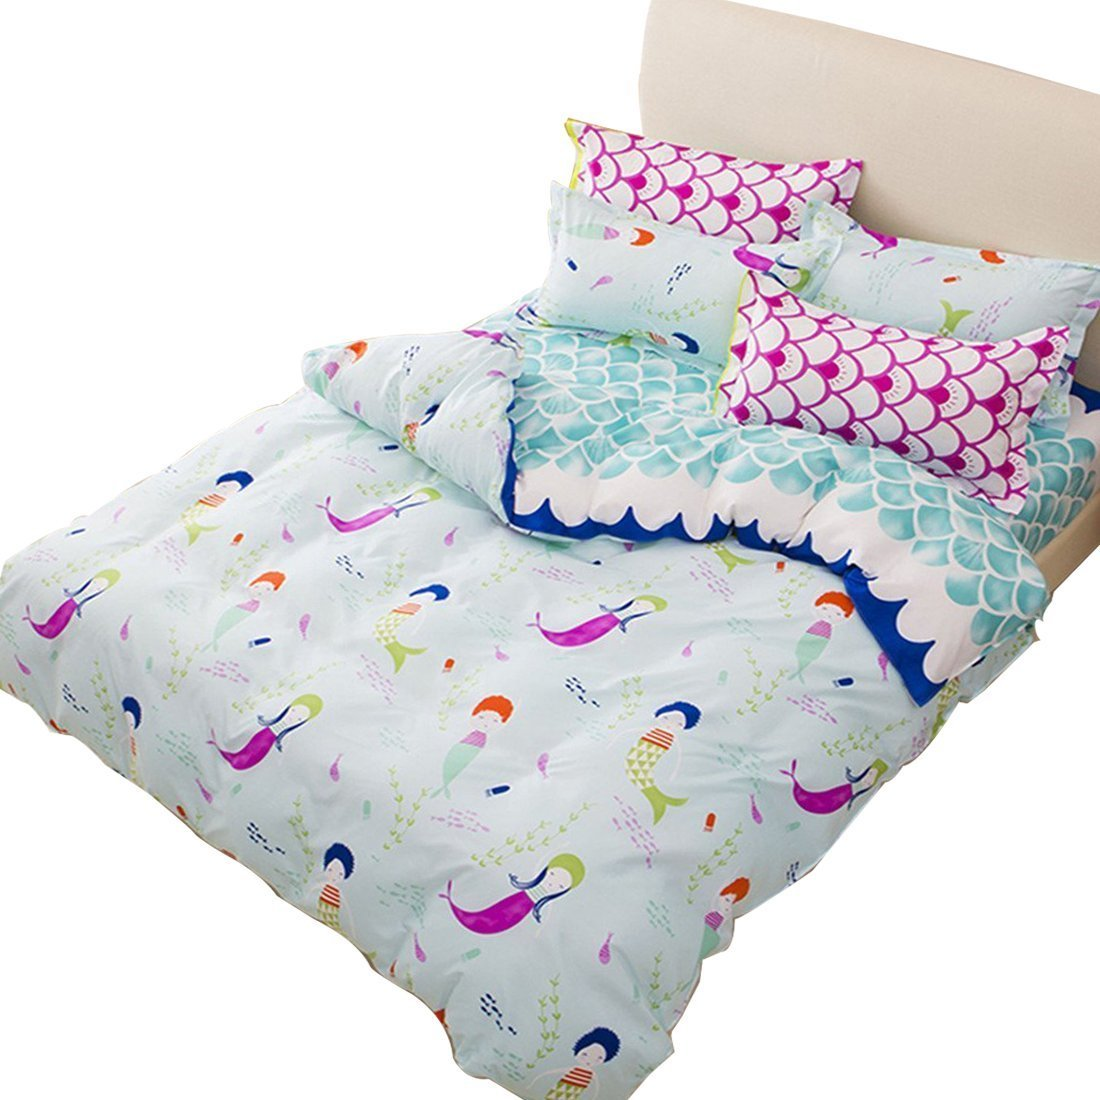 Sookie 3 Pieces Blue Duvet Small Mermaid Bedding Set Full/Queen for Kids and Girls,(NO Comforter)-Mermaid Duvet Cover&Pillow Shams -Queen Size